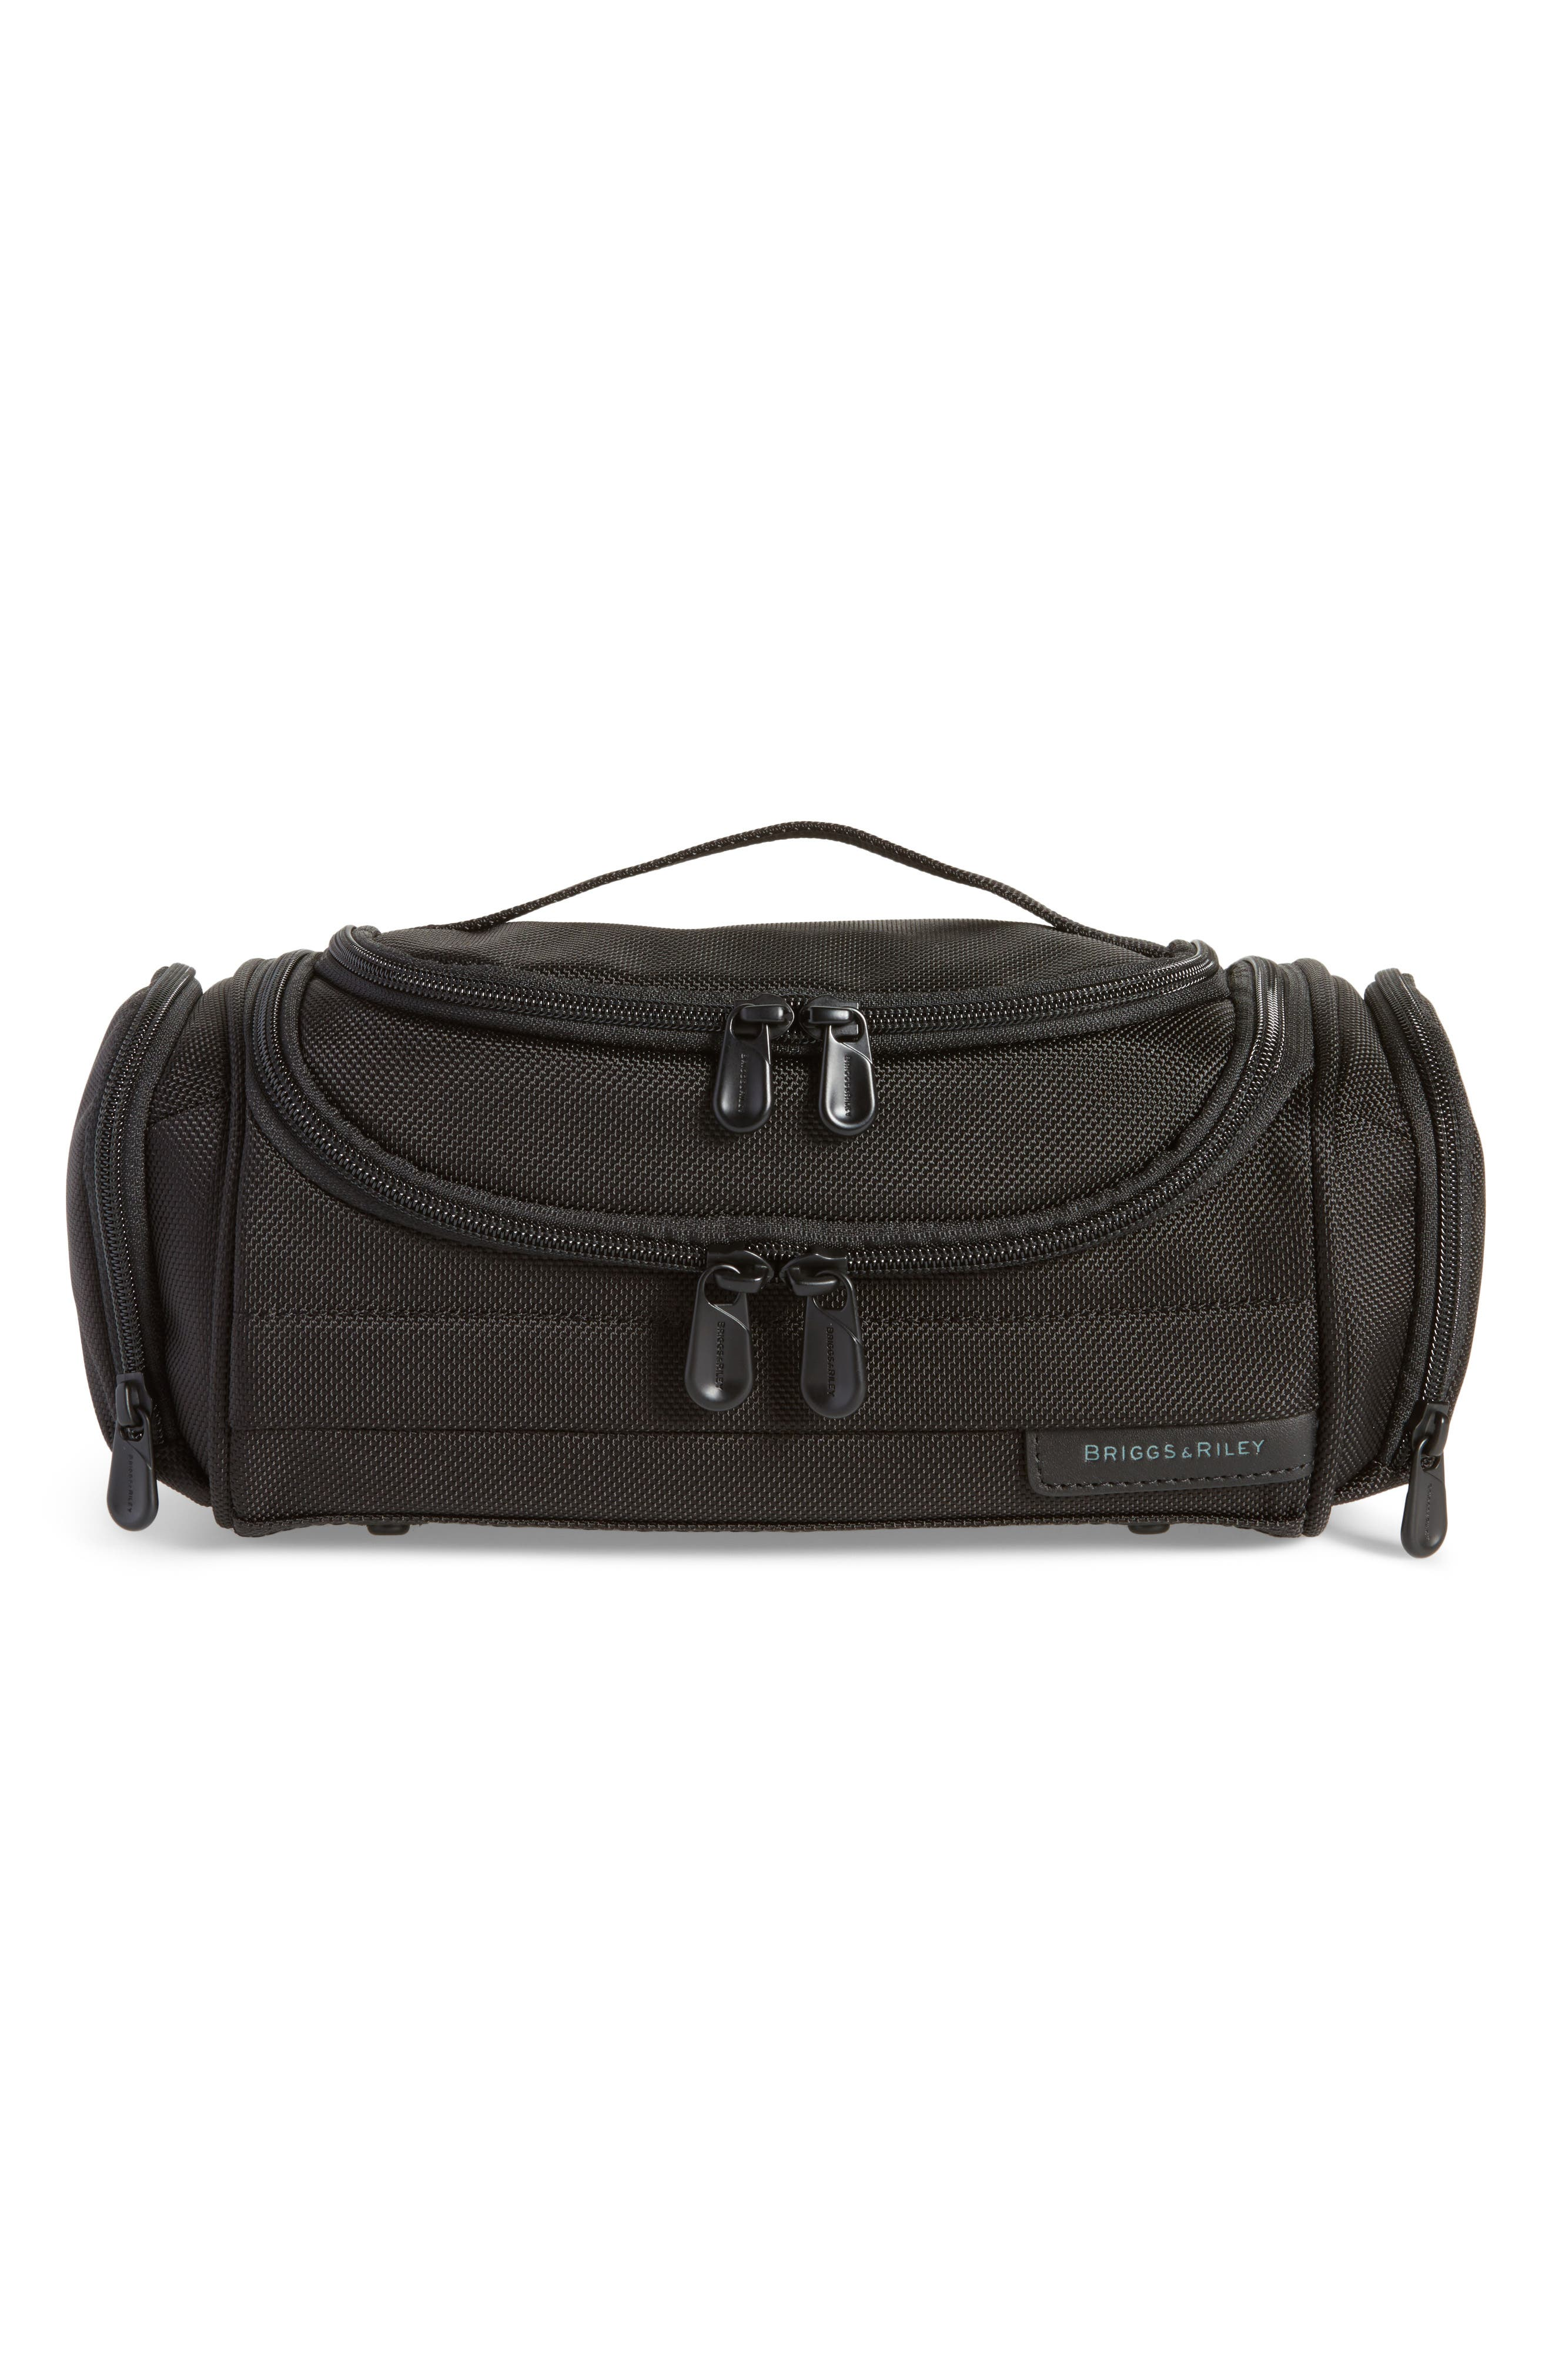 Main Image - Briggs & Riley Baseline - Executive Toiletry Kit